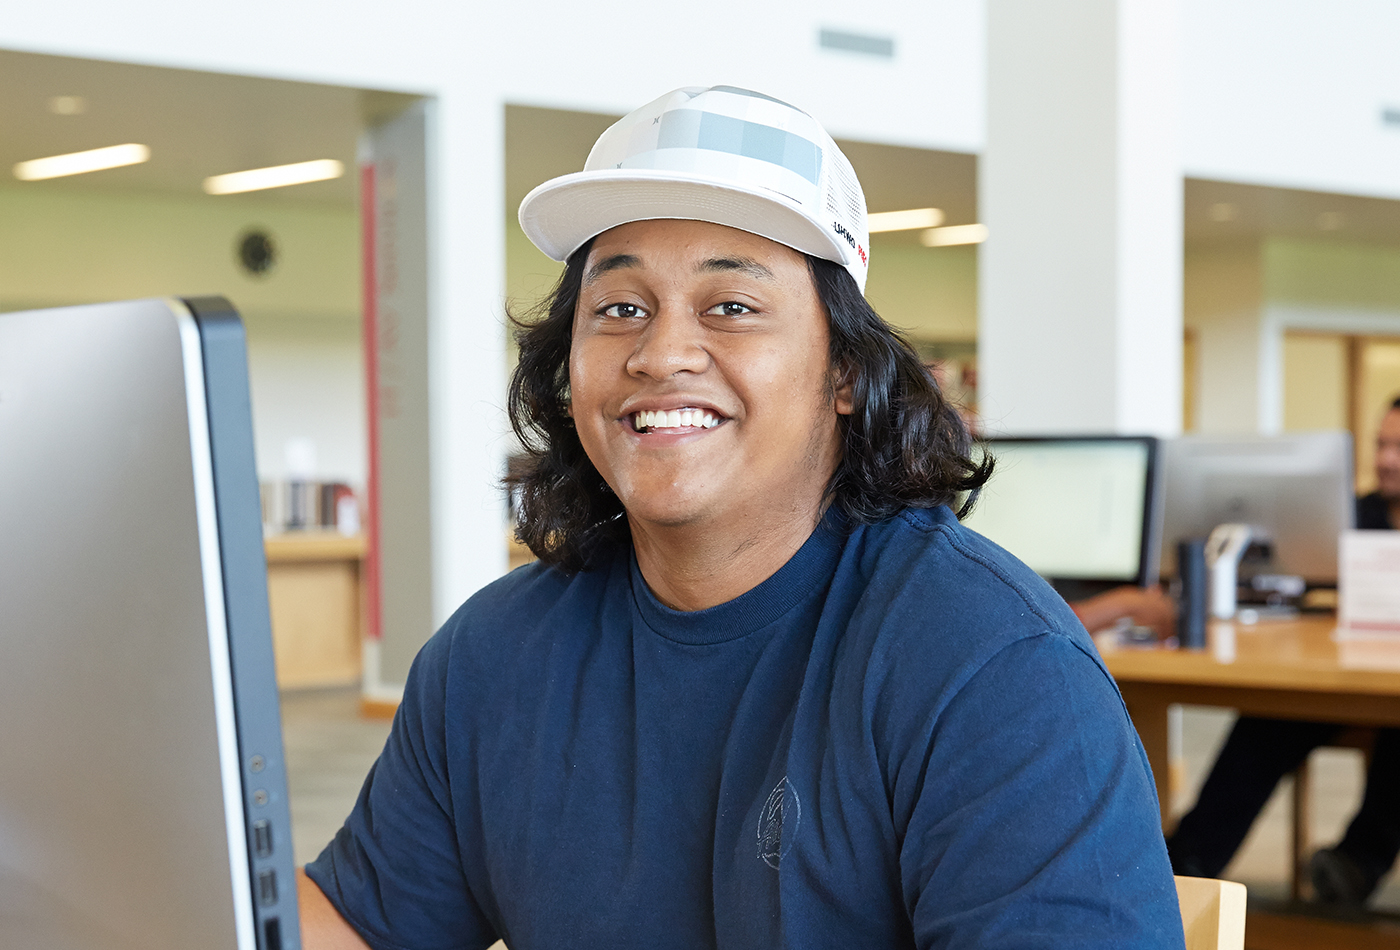 A student in a white cap smiling while sitting at a computer station in the library.